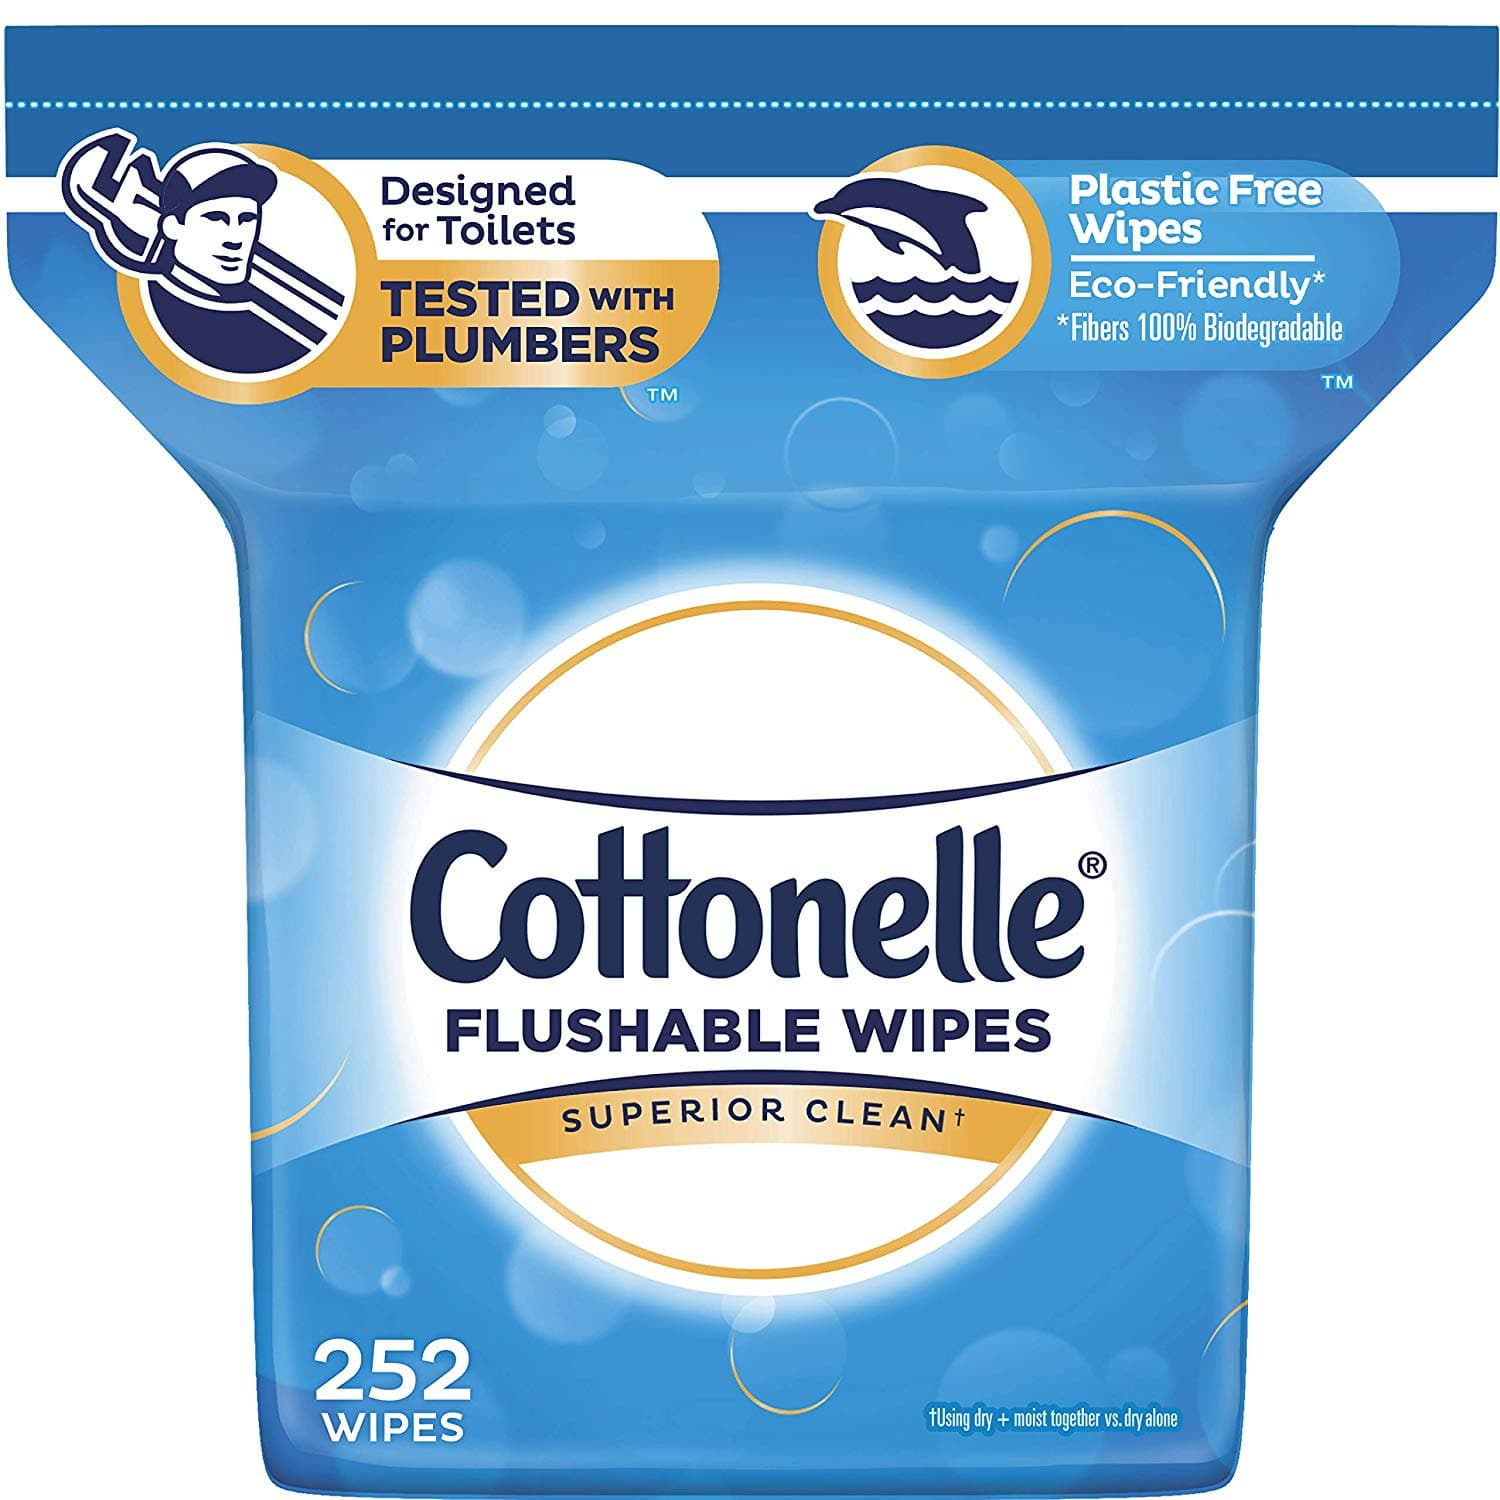 Cottonelle FreshCare Flushable Wipes for Adults 252 Wet Wipes amazon s&s $6